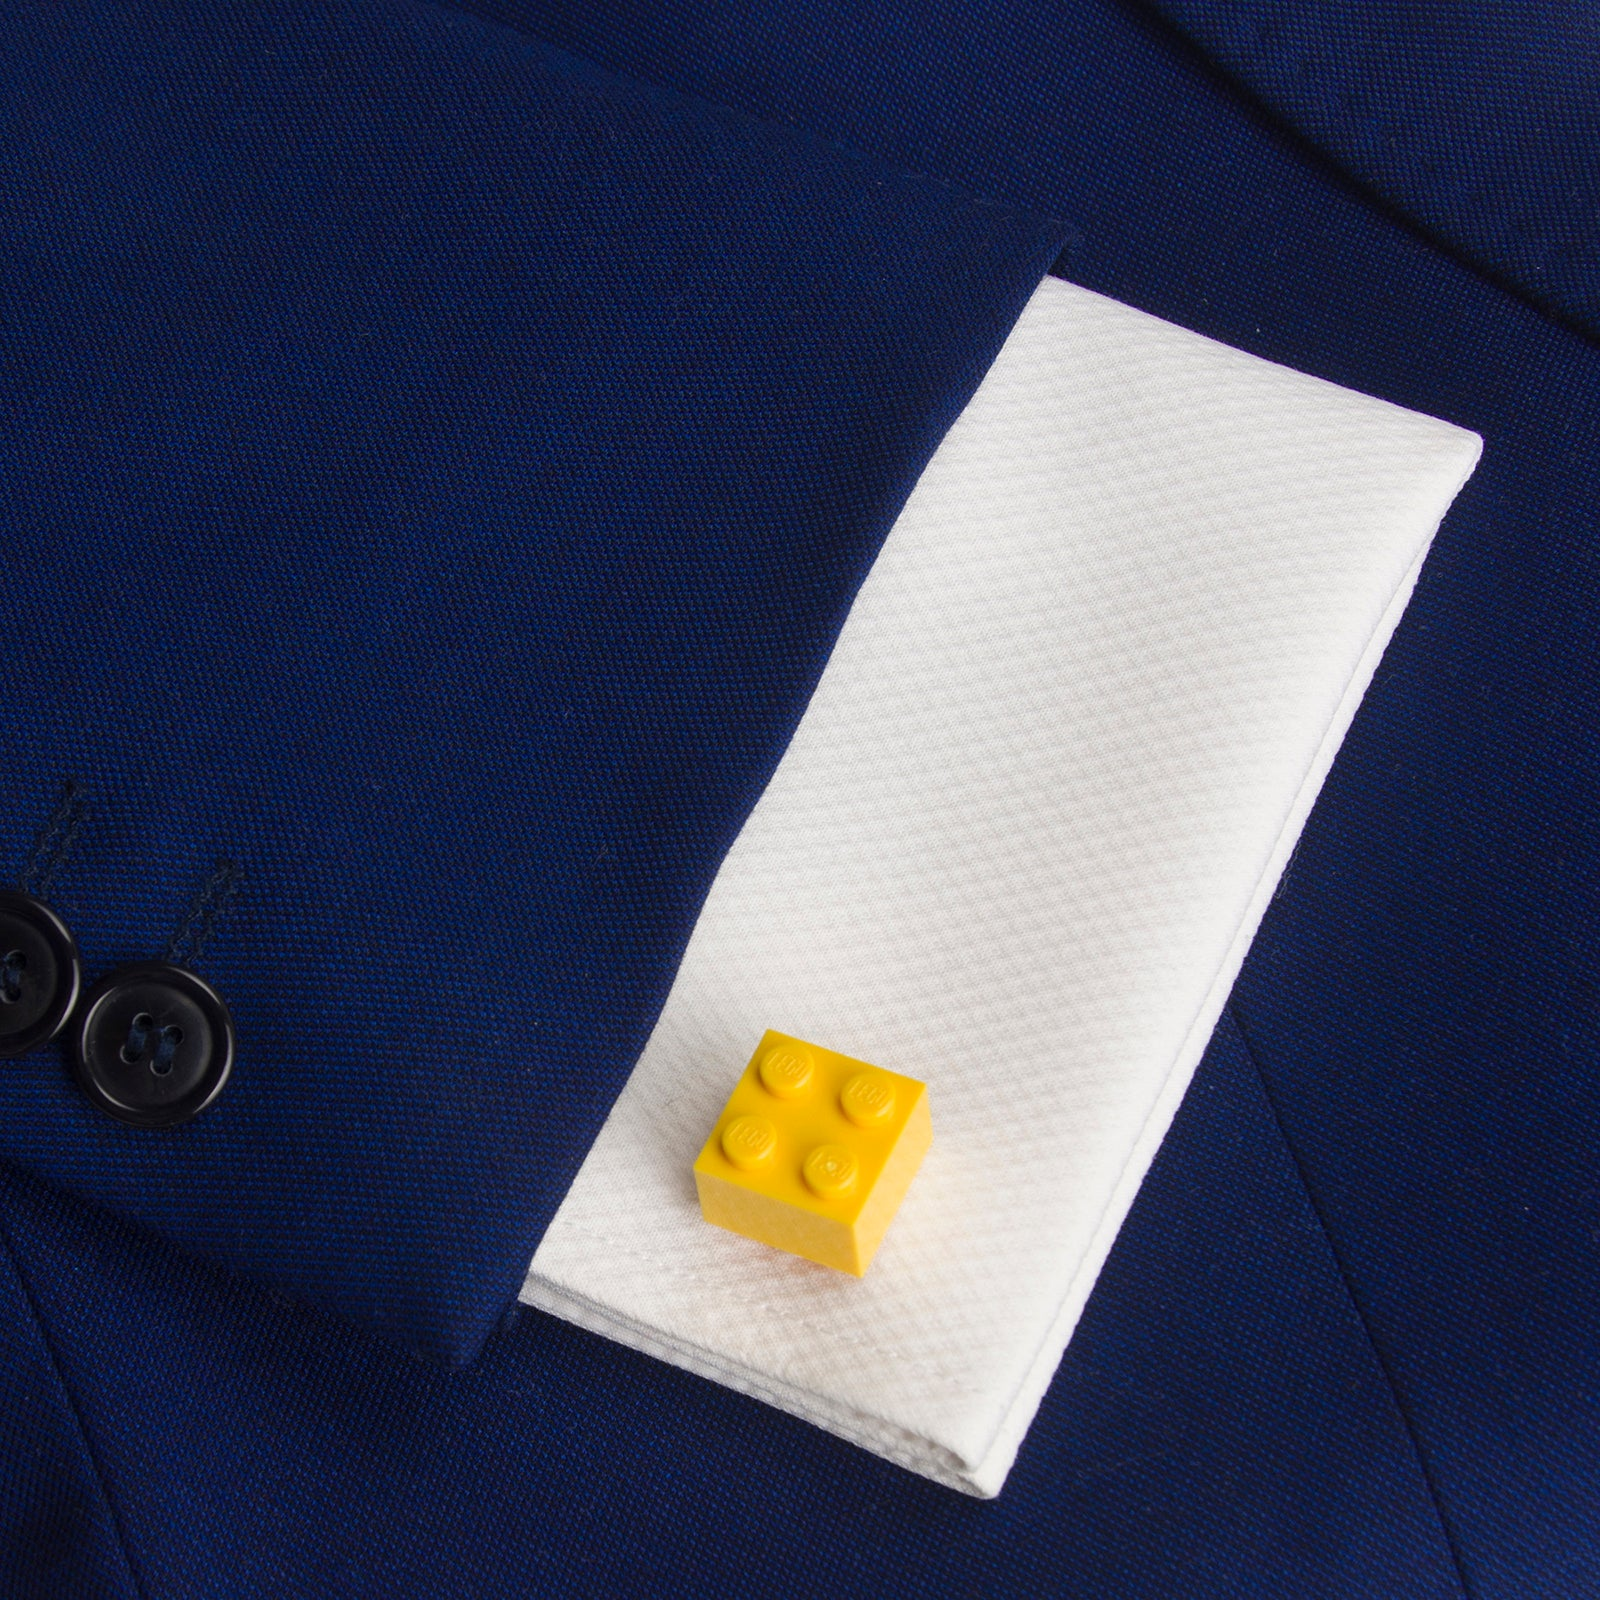 yellow cube cufflinks